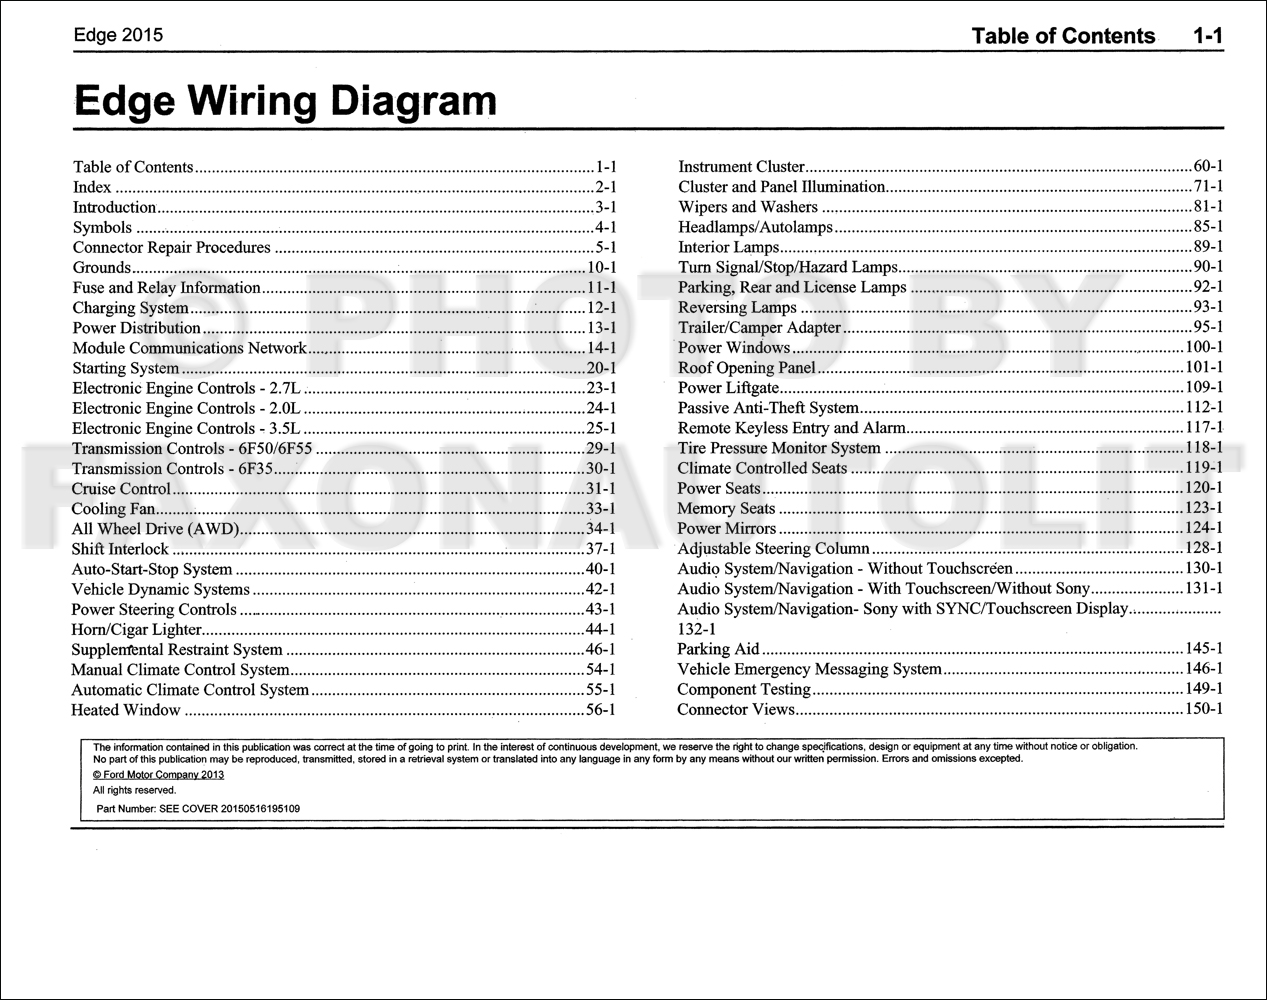 2013 ford edge wiring schematic 2013 ford edge trailer wiring diagram #10